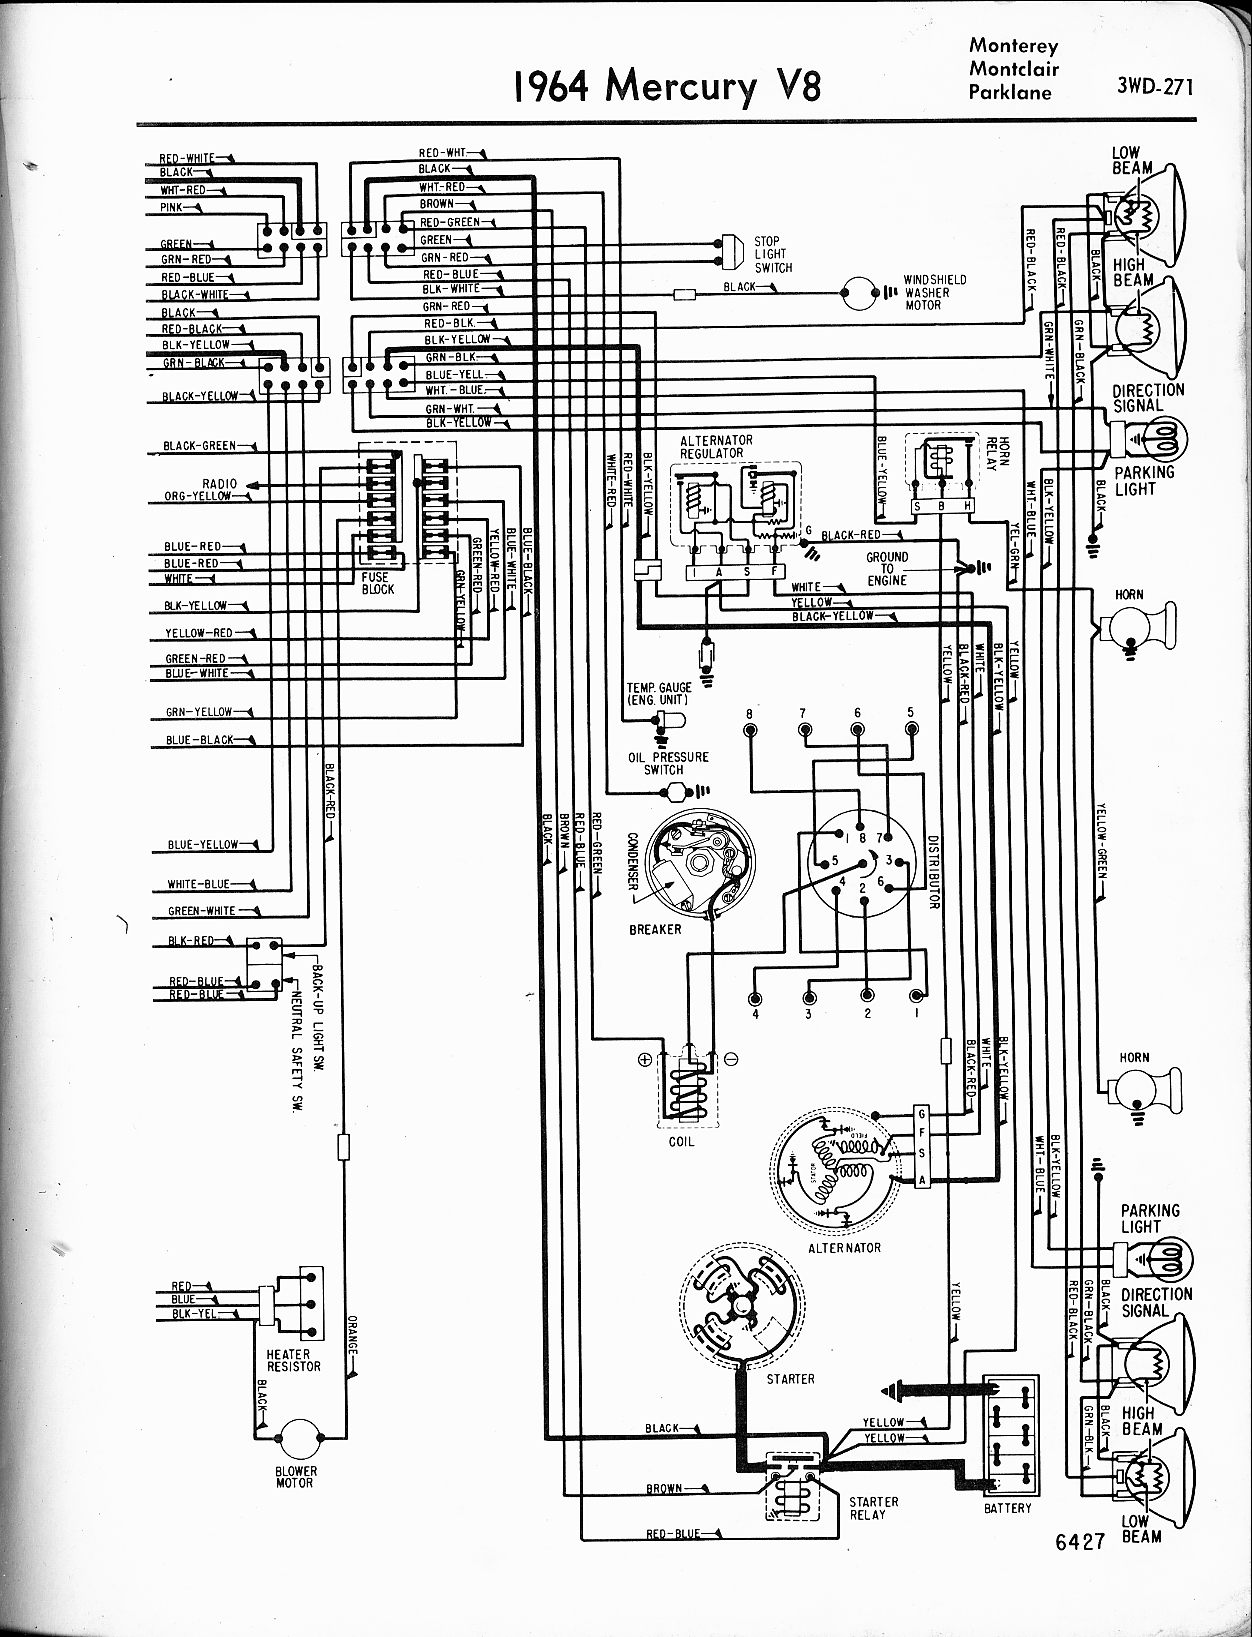 1962 ford fuse block diagram free download wiring diagrams rh sandzak co Ford F-250 Fuse Box Diagram Ford Mustang Fuse Box Diagram